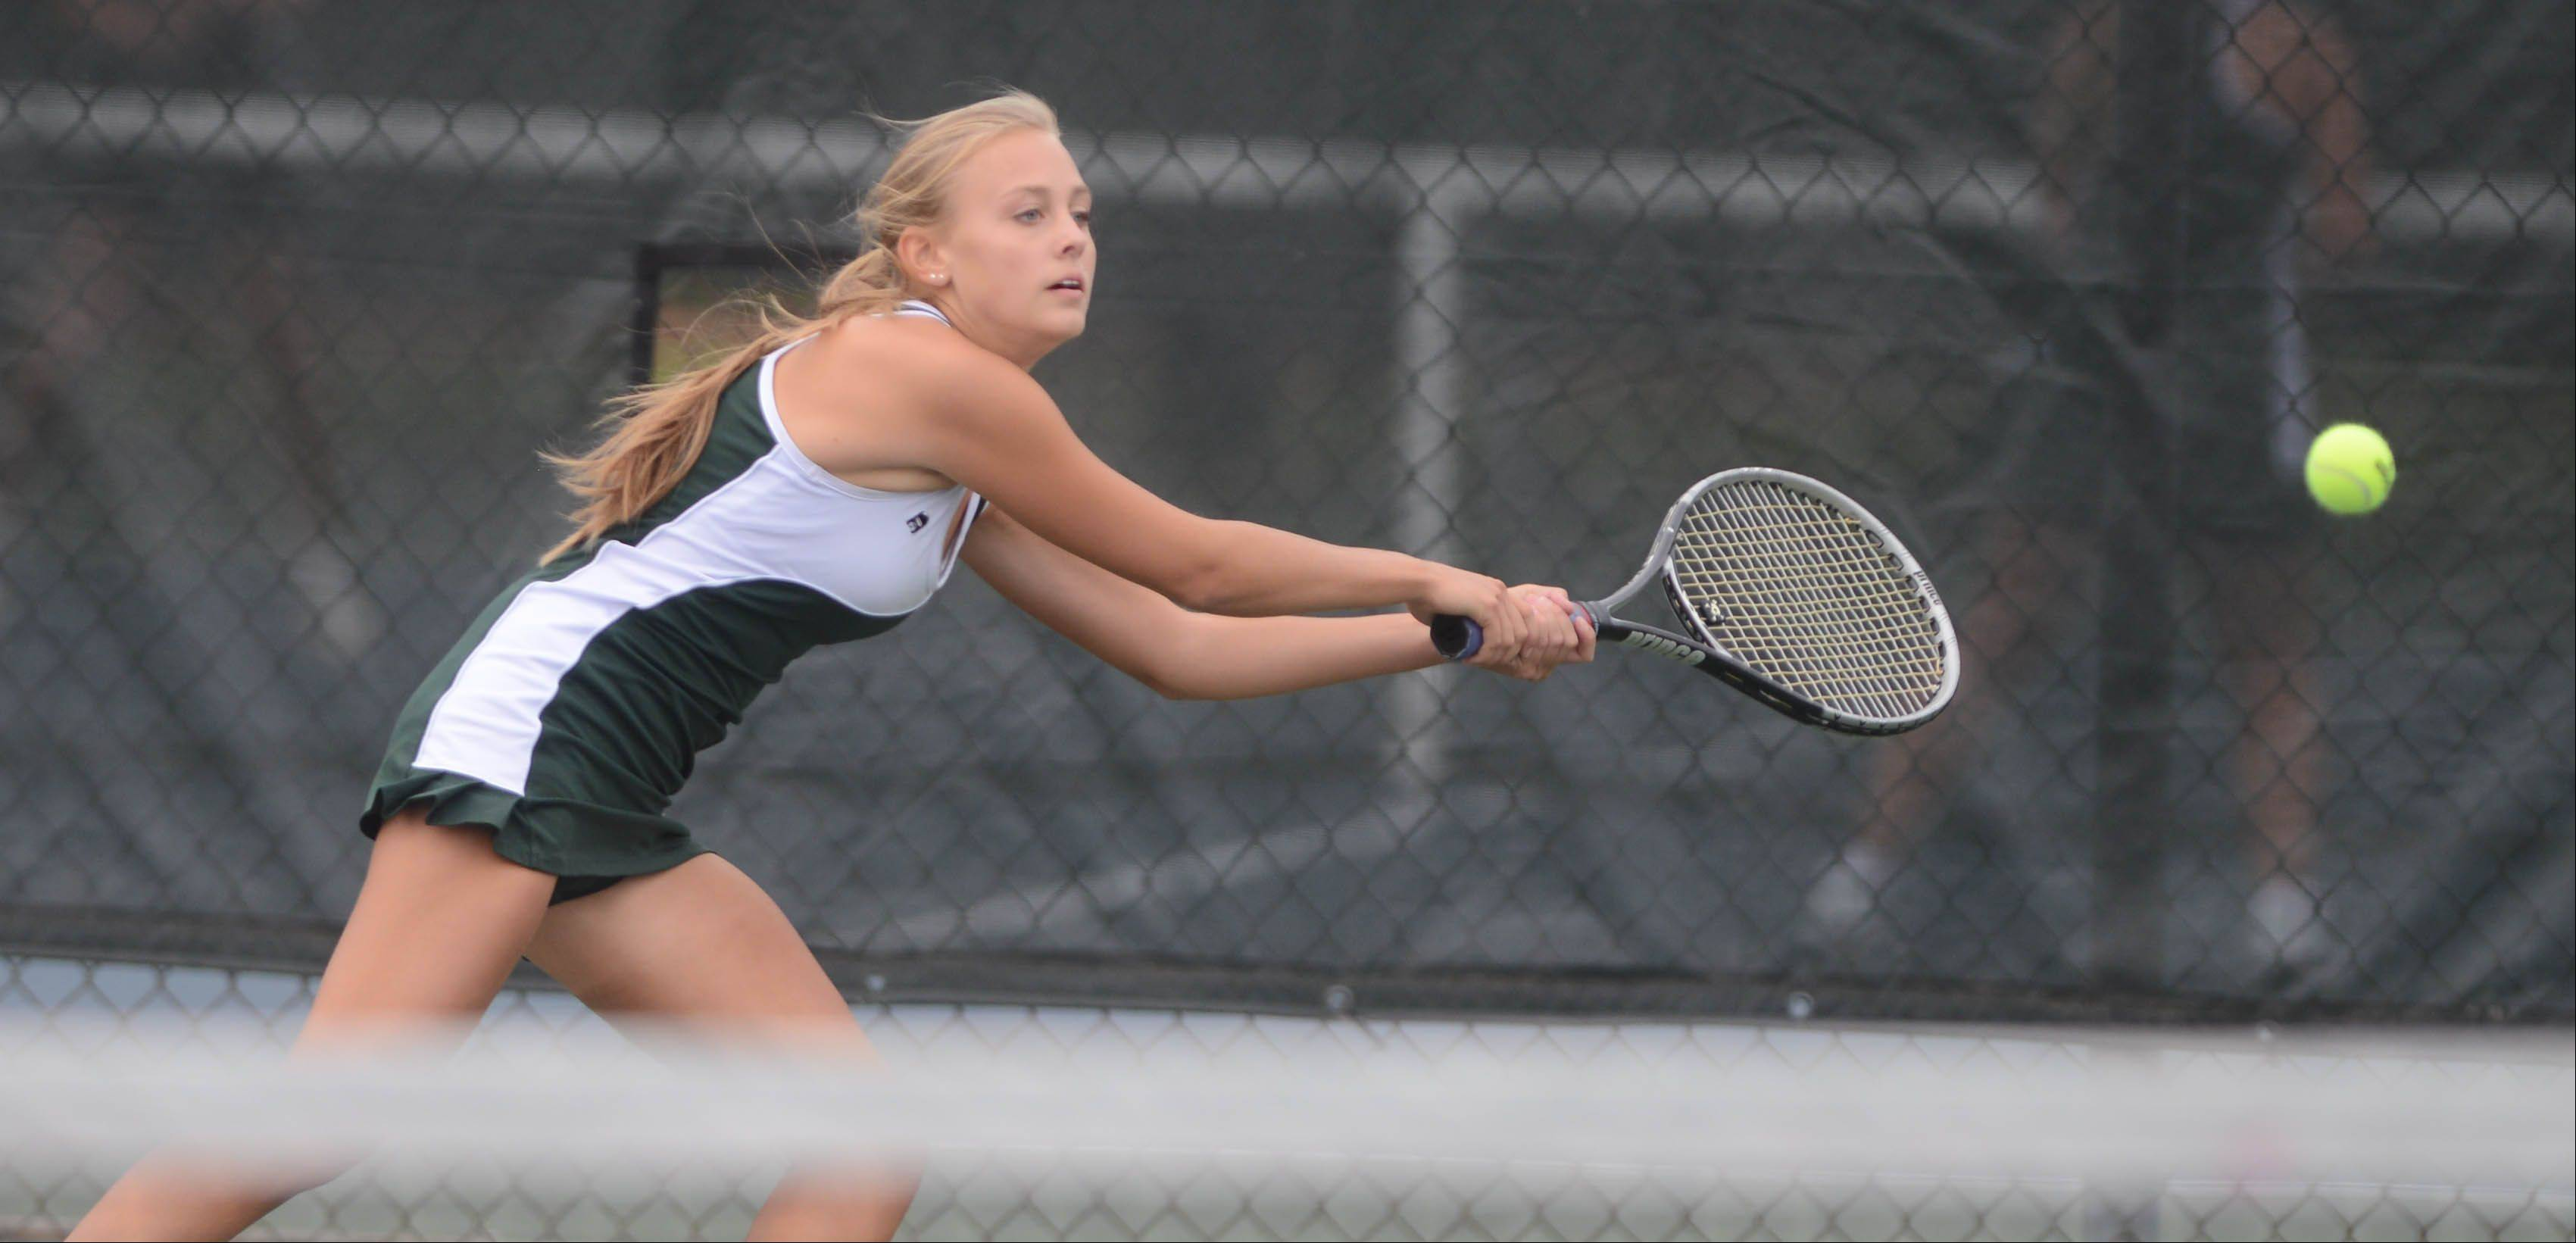 Amanda Glavin of Waubonsie reaches for a ball during the Metea Valley at Waubonsie Valley girls tennis match Tuesday.